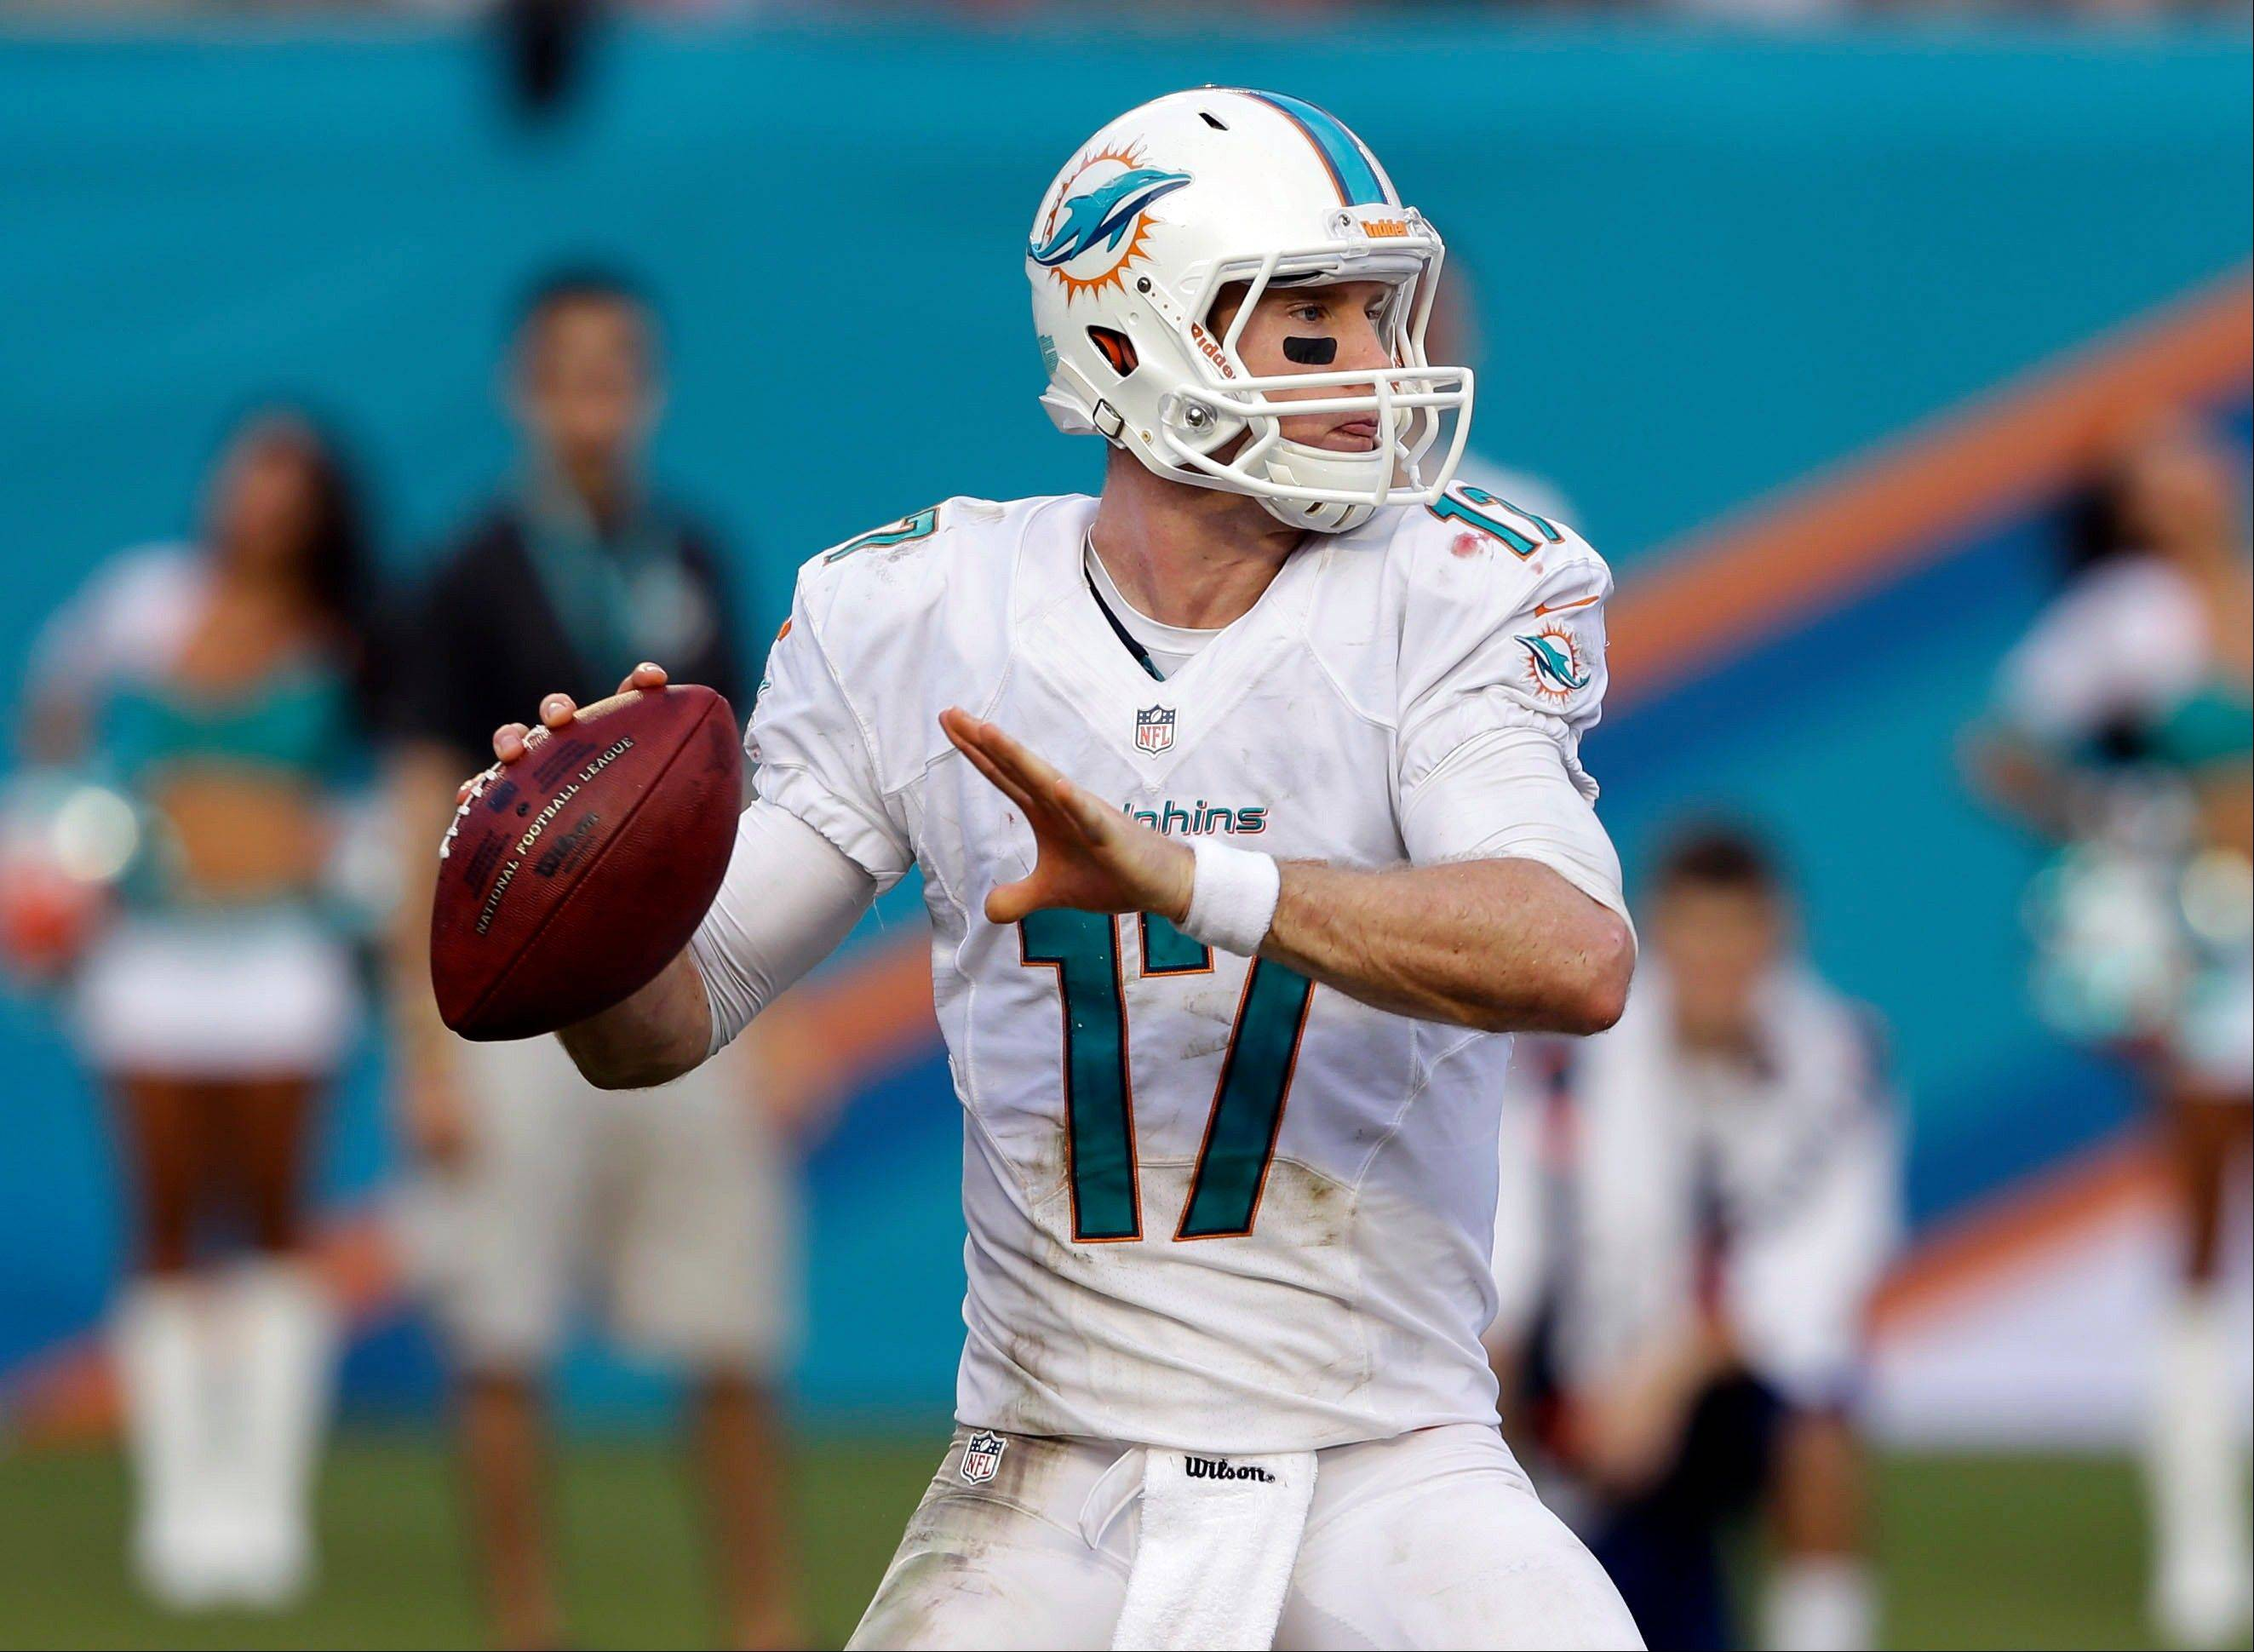 Miami Dolphins quarterback Ryan Tannehill (17) looks to pass during the second half of an NFL football game against the Atlanta Falcons, Sunday, Sept. 22, 2013, in Miami Gardens, Fla. The Dolphins defeated the Falcons 27-13.